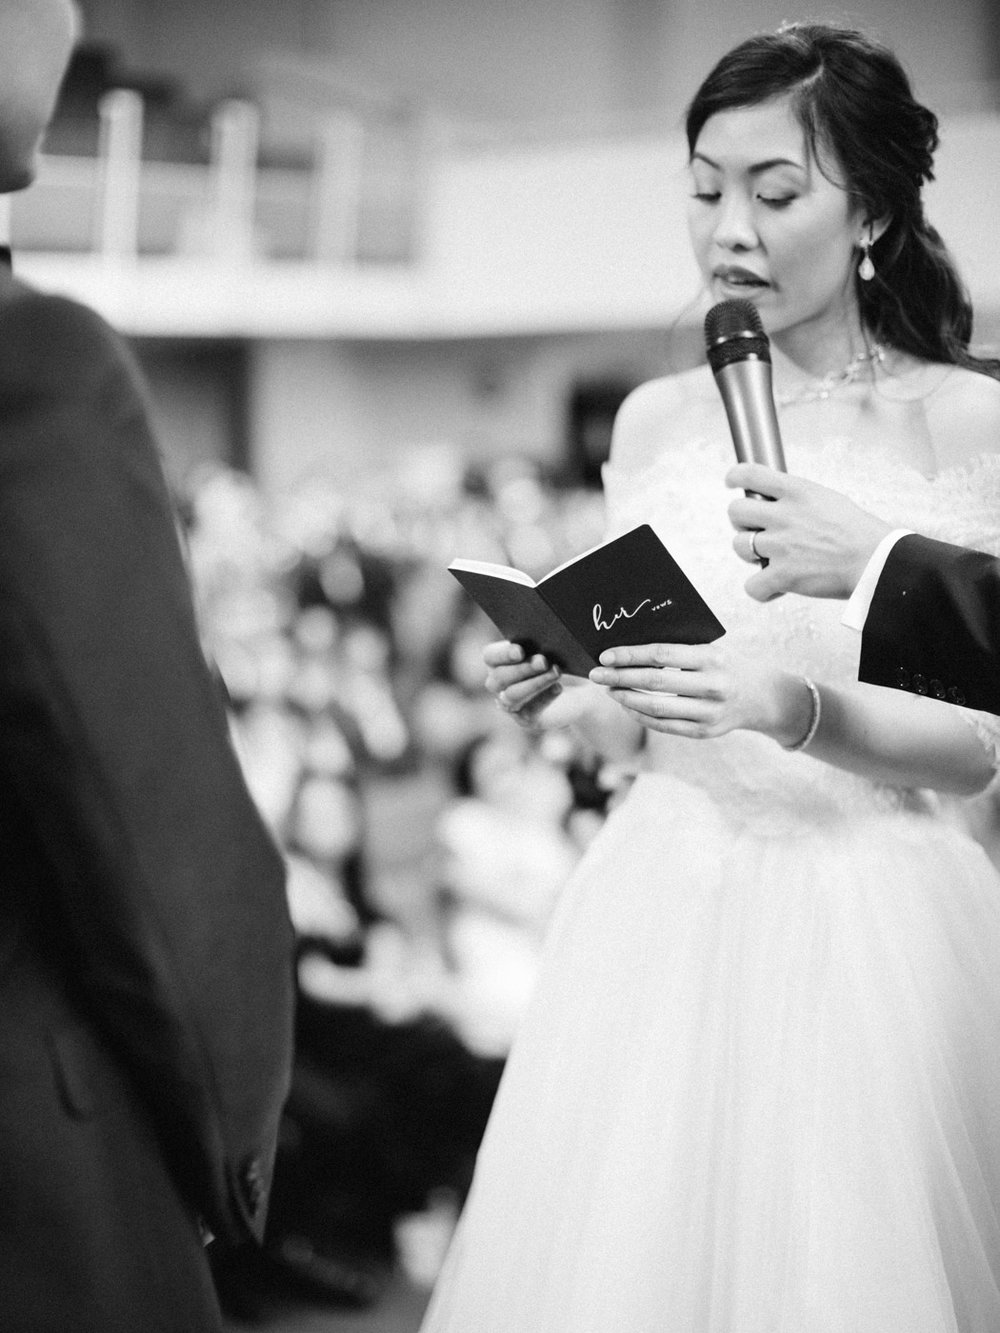 toronto_wedding_photographer_documentary_fine_art_photography-62.jpg